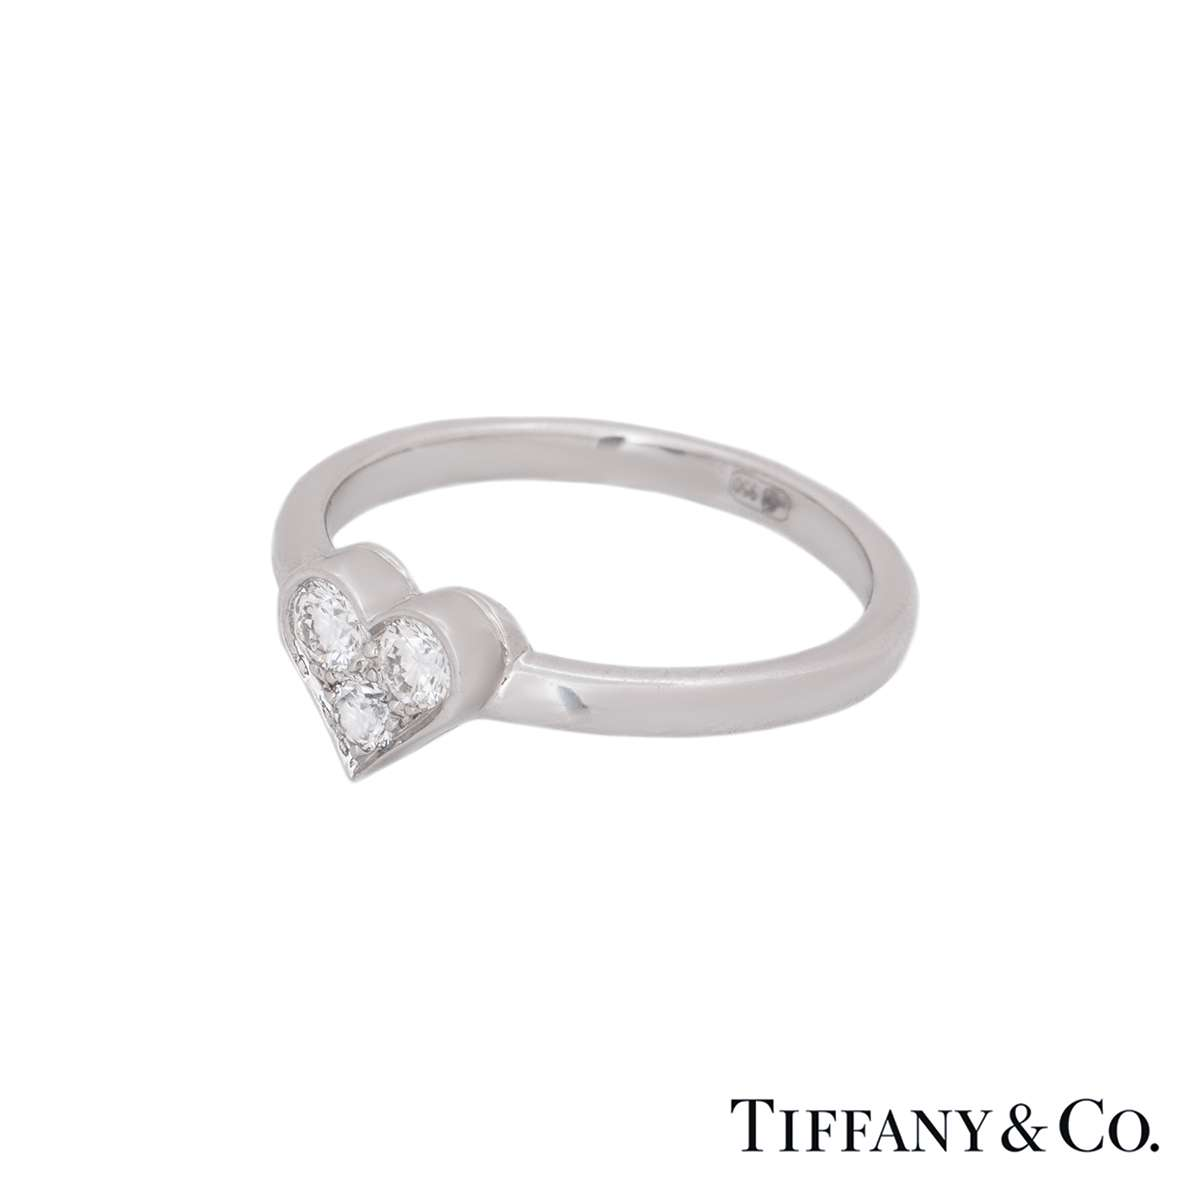 Tiffany & Co. Platinum Hearts Diamond Ring